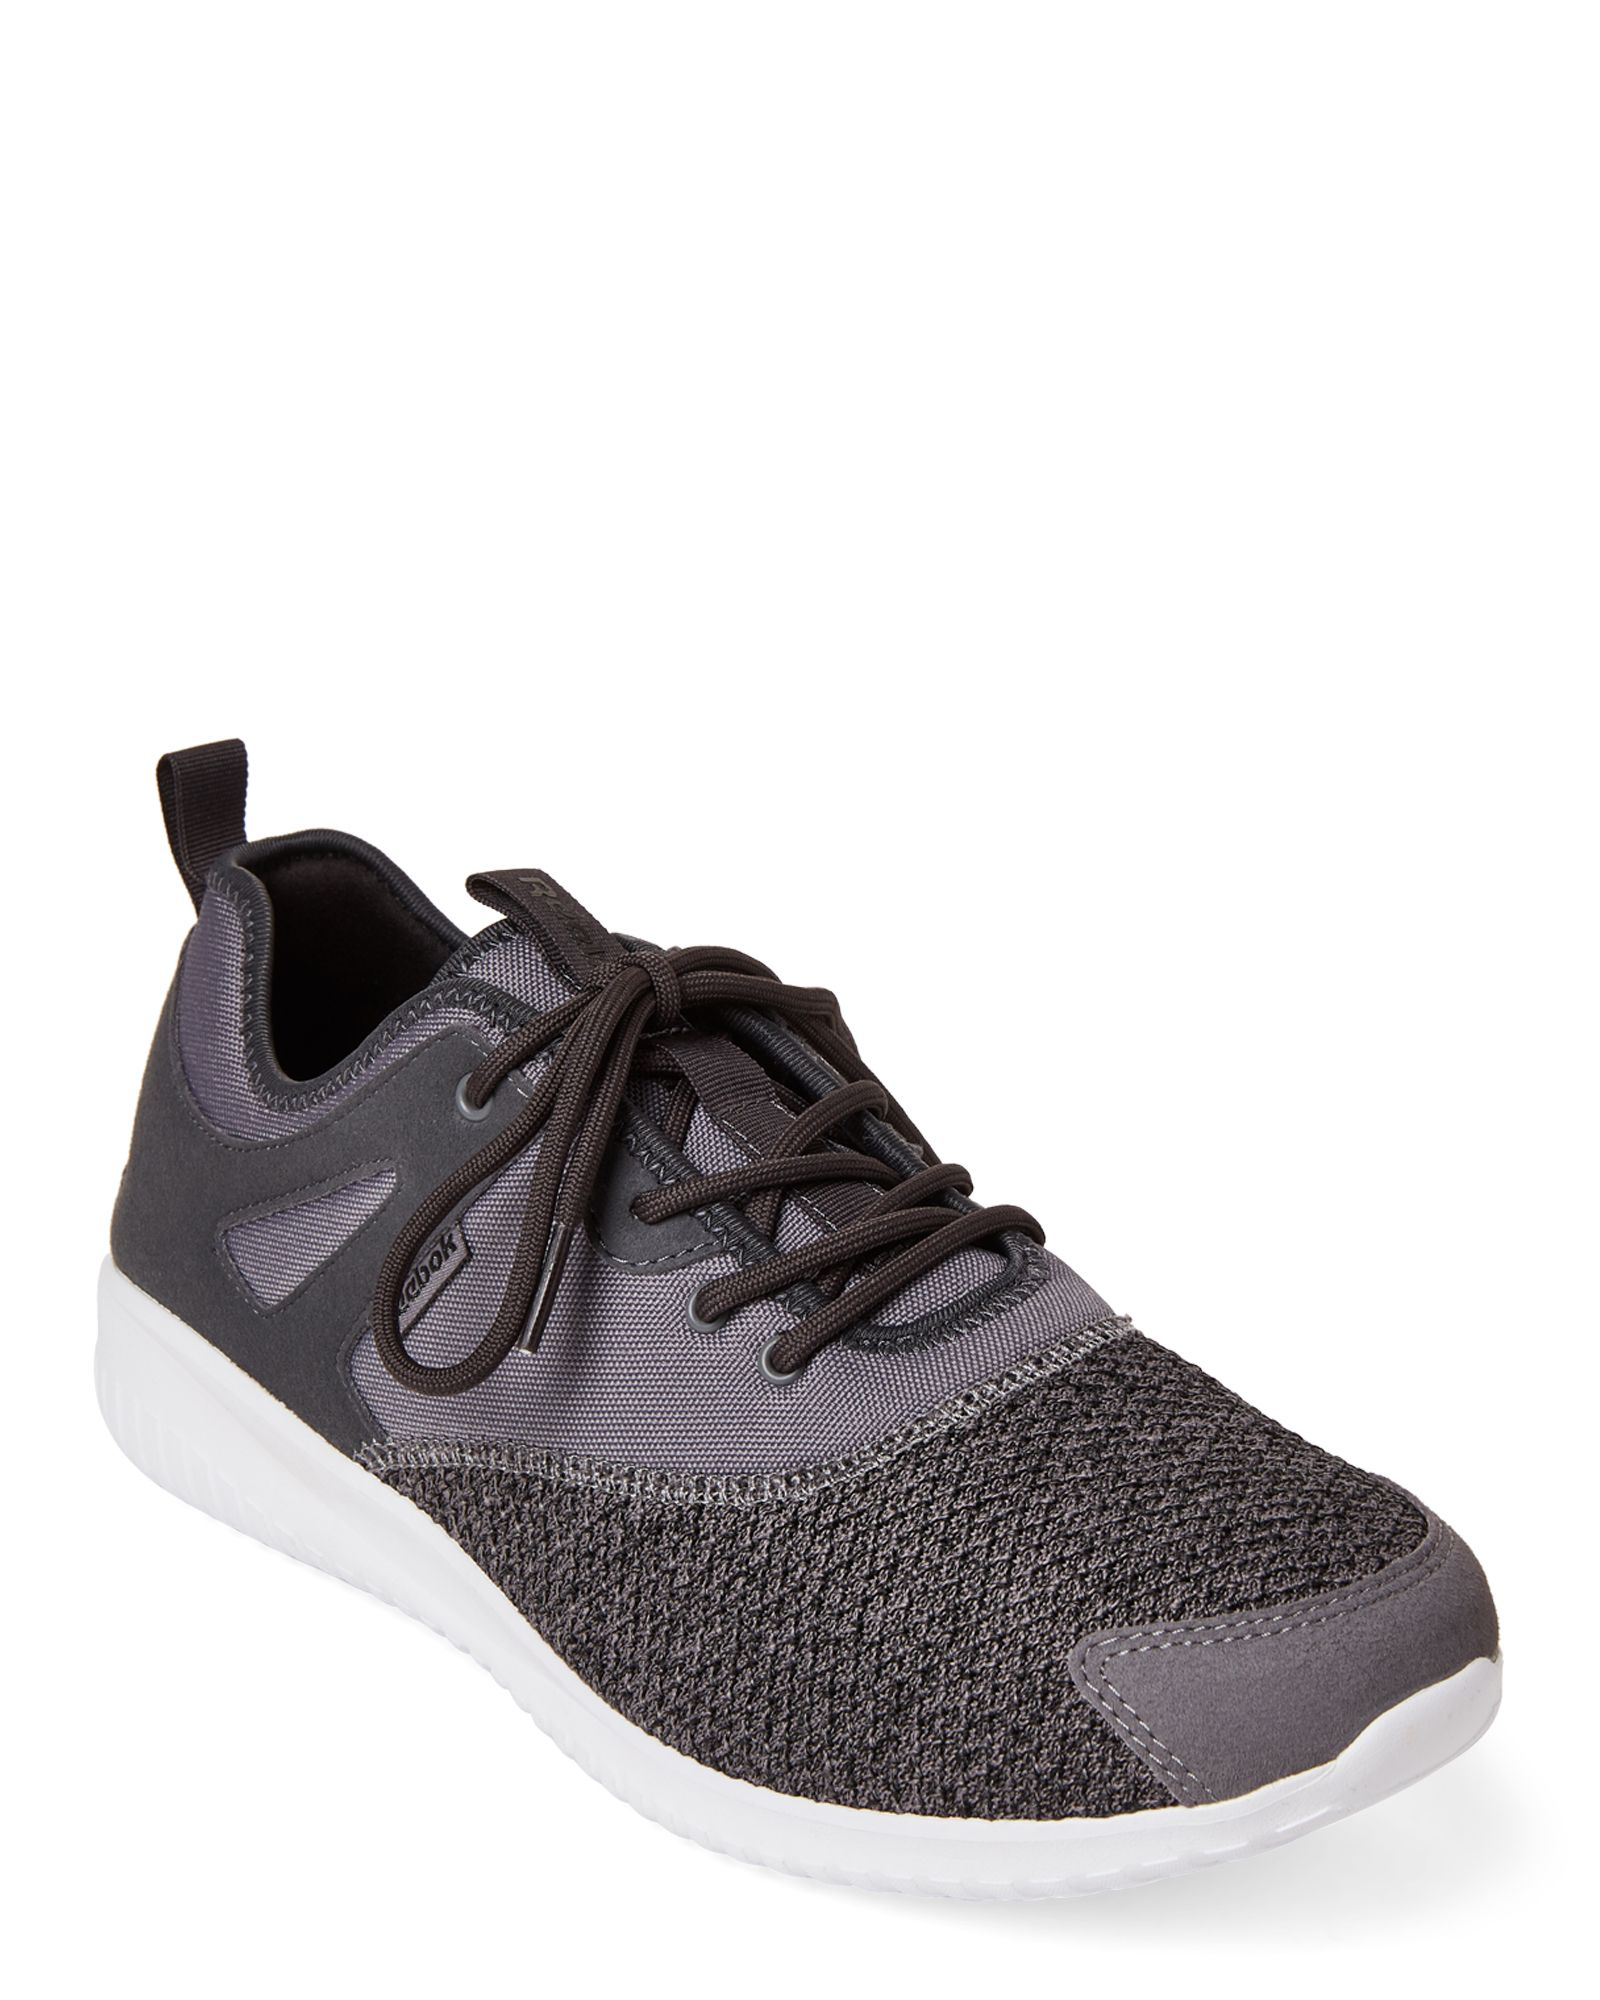 168a067a50b Reebok Shark   Solid Grey Stylescape 2.0 Arch Low-Top Sneakers